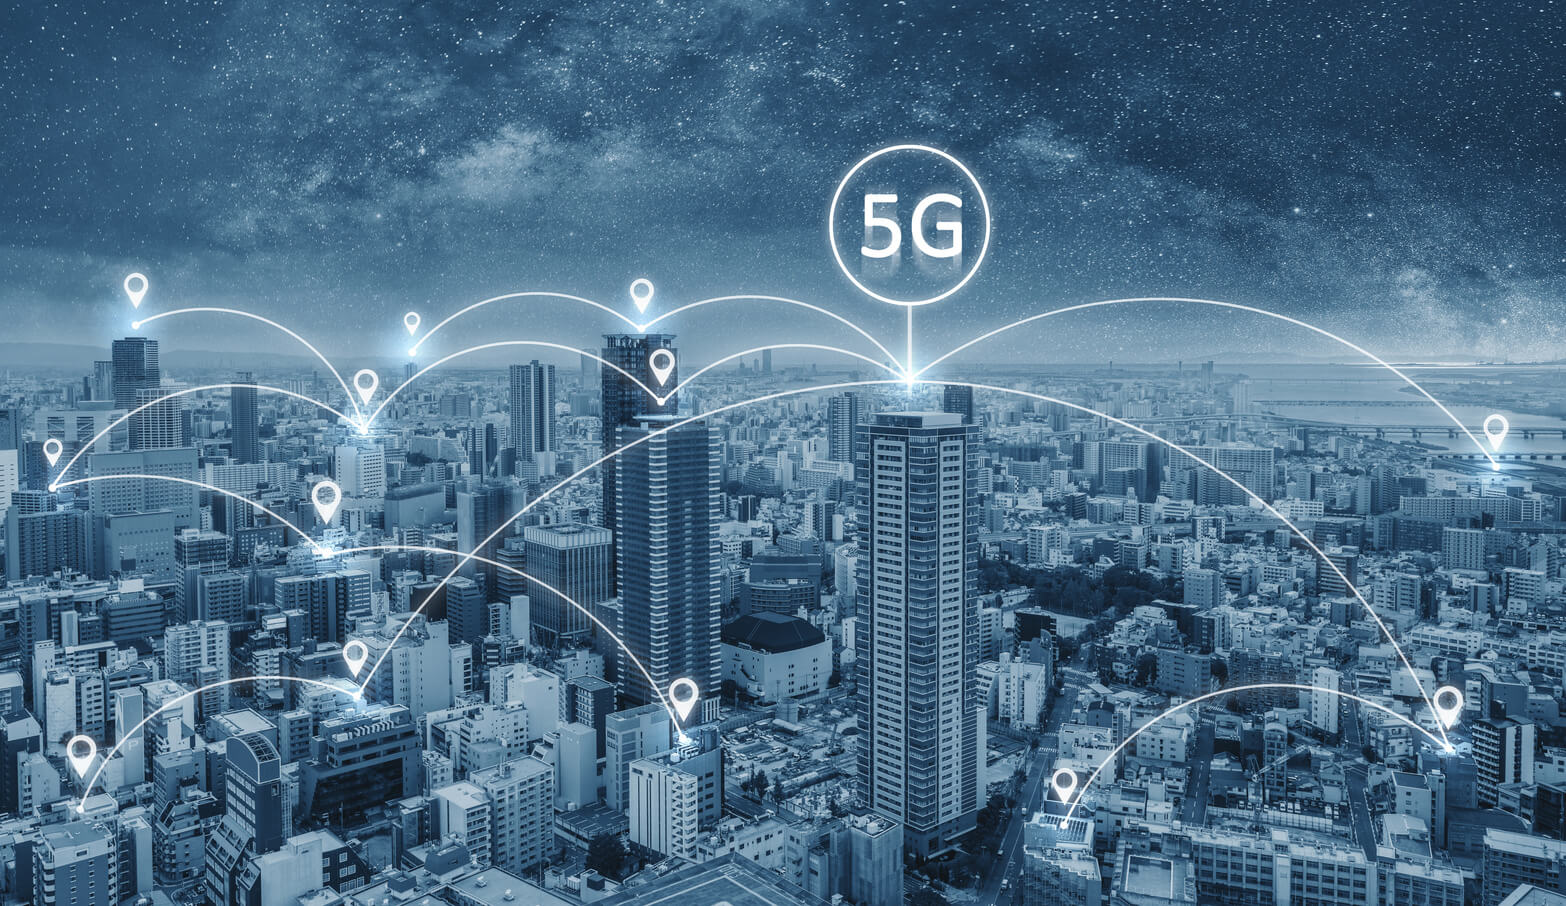 Excited or not about the 5g tech